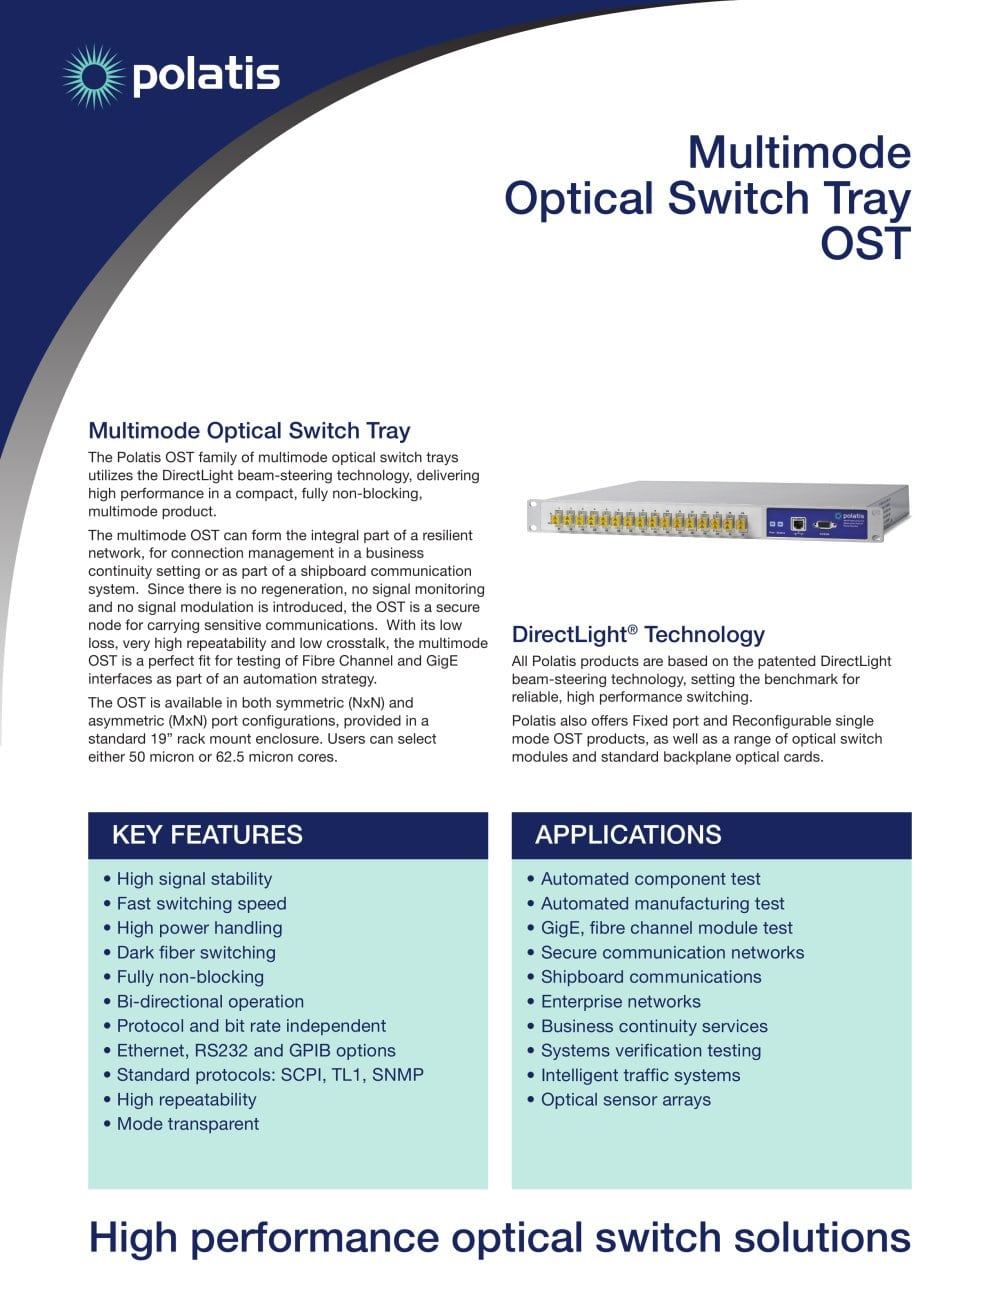 Optical Switch Tray Ost Multimode Jdsu Pdf Catalogs Option 2 Power To Switches 1 Pages